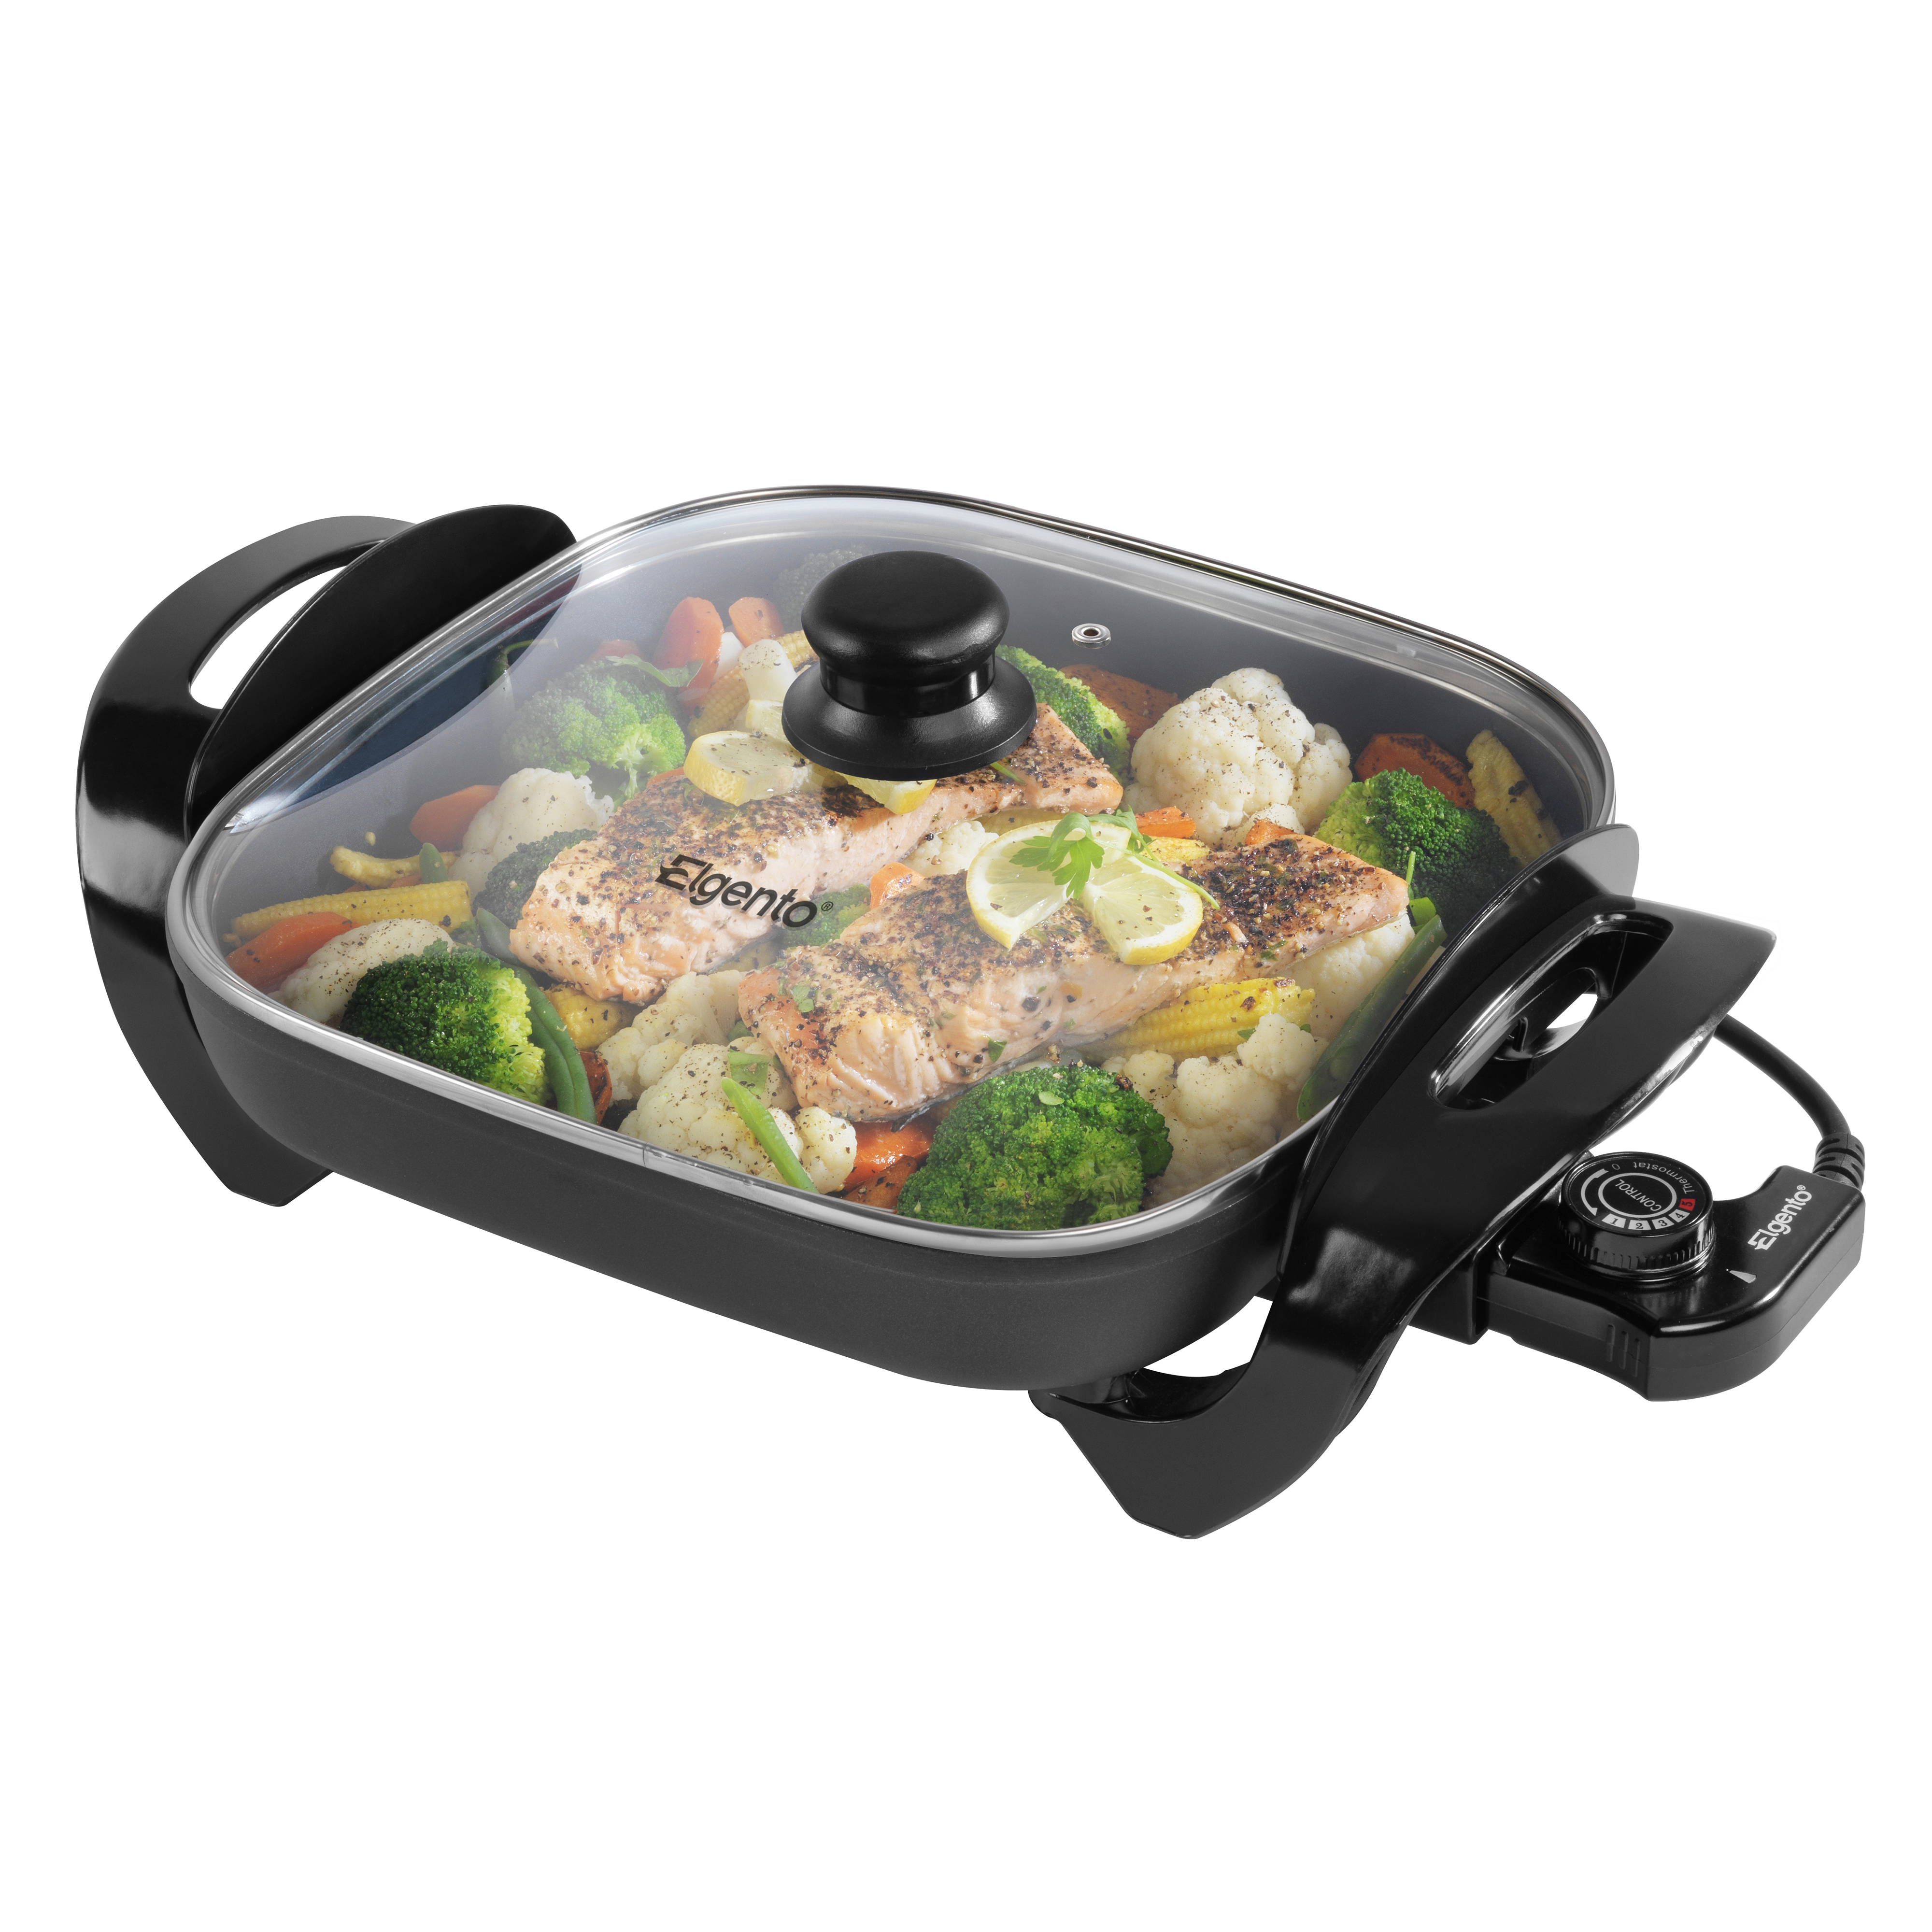 Elgento 30Cm Electric Frying Pan No Colour